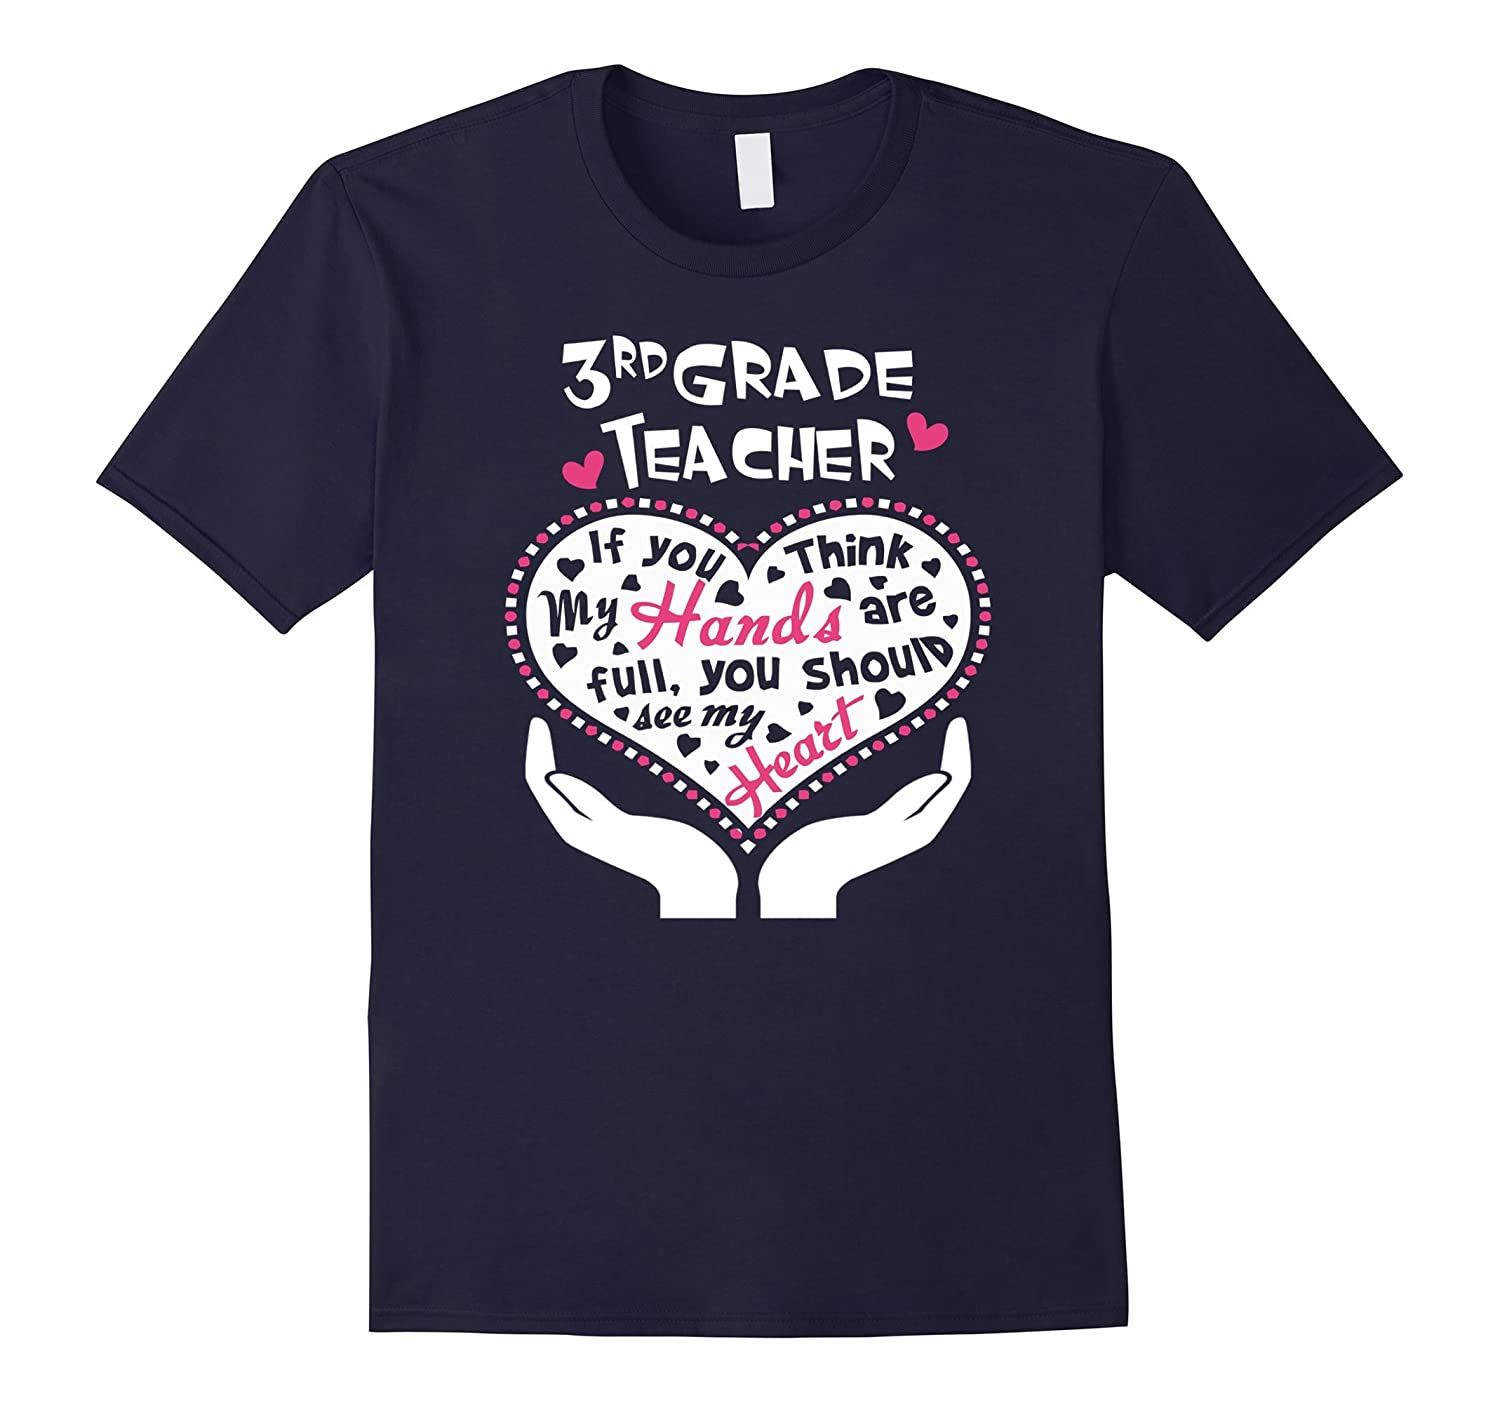 3rd Grade Teacher Hand & Heart T Shirt-BN